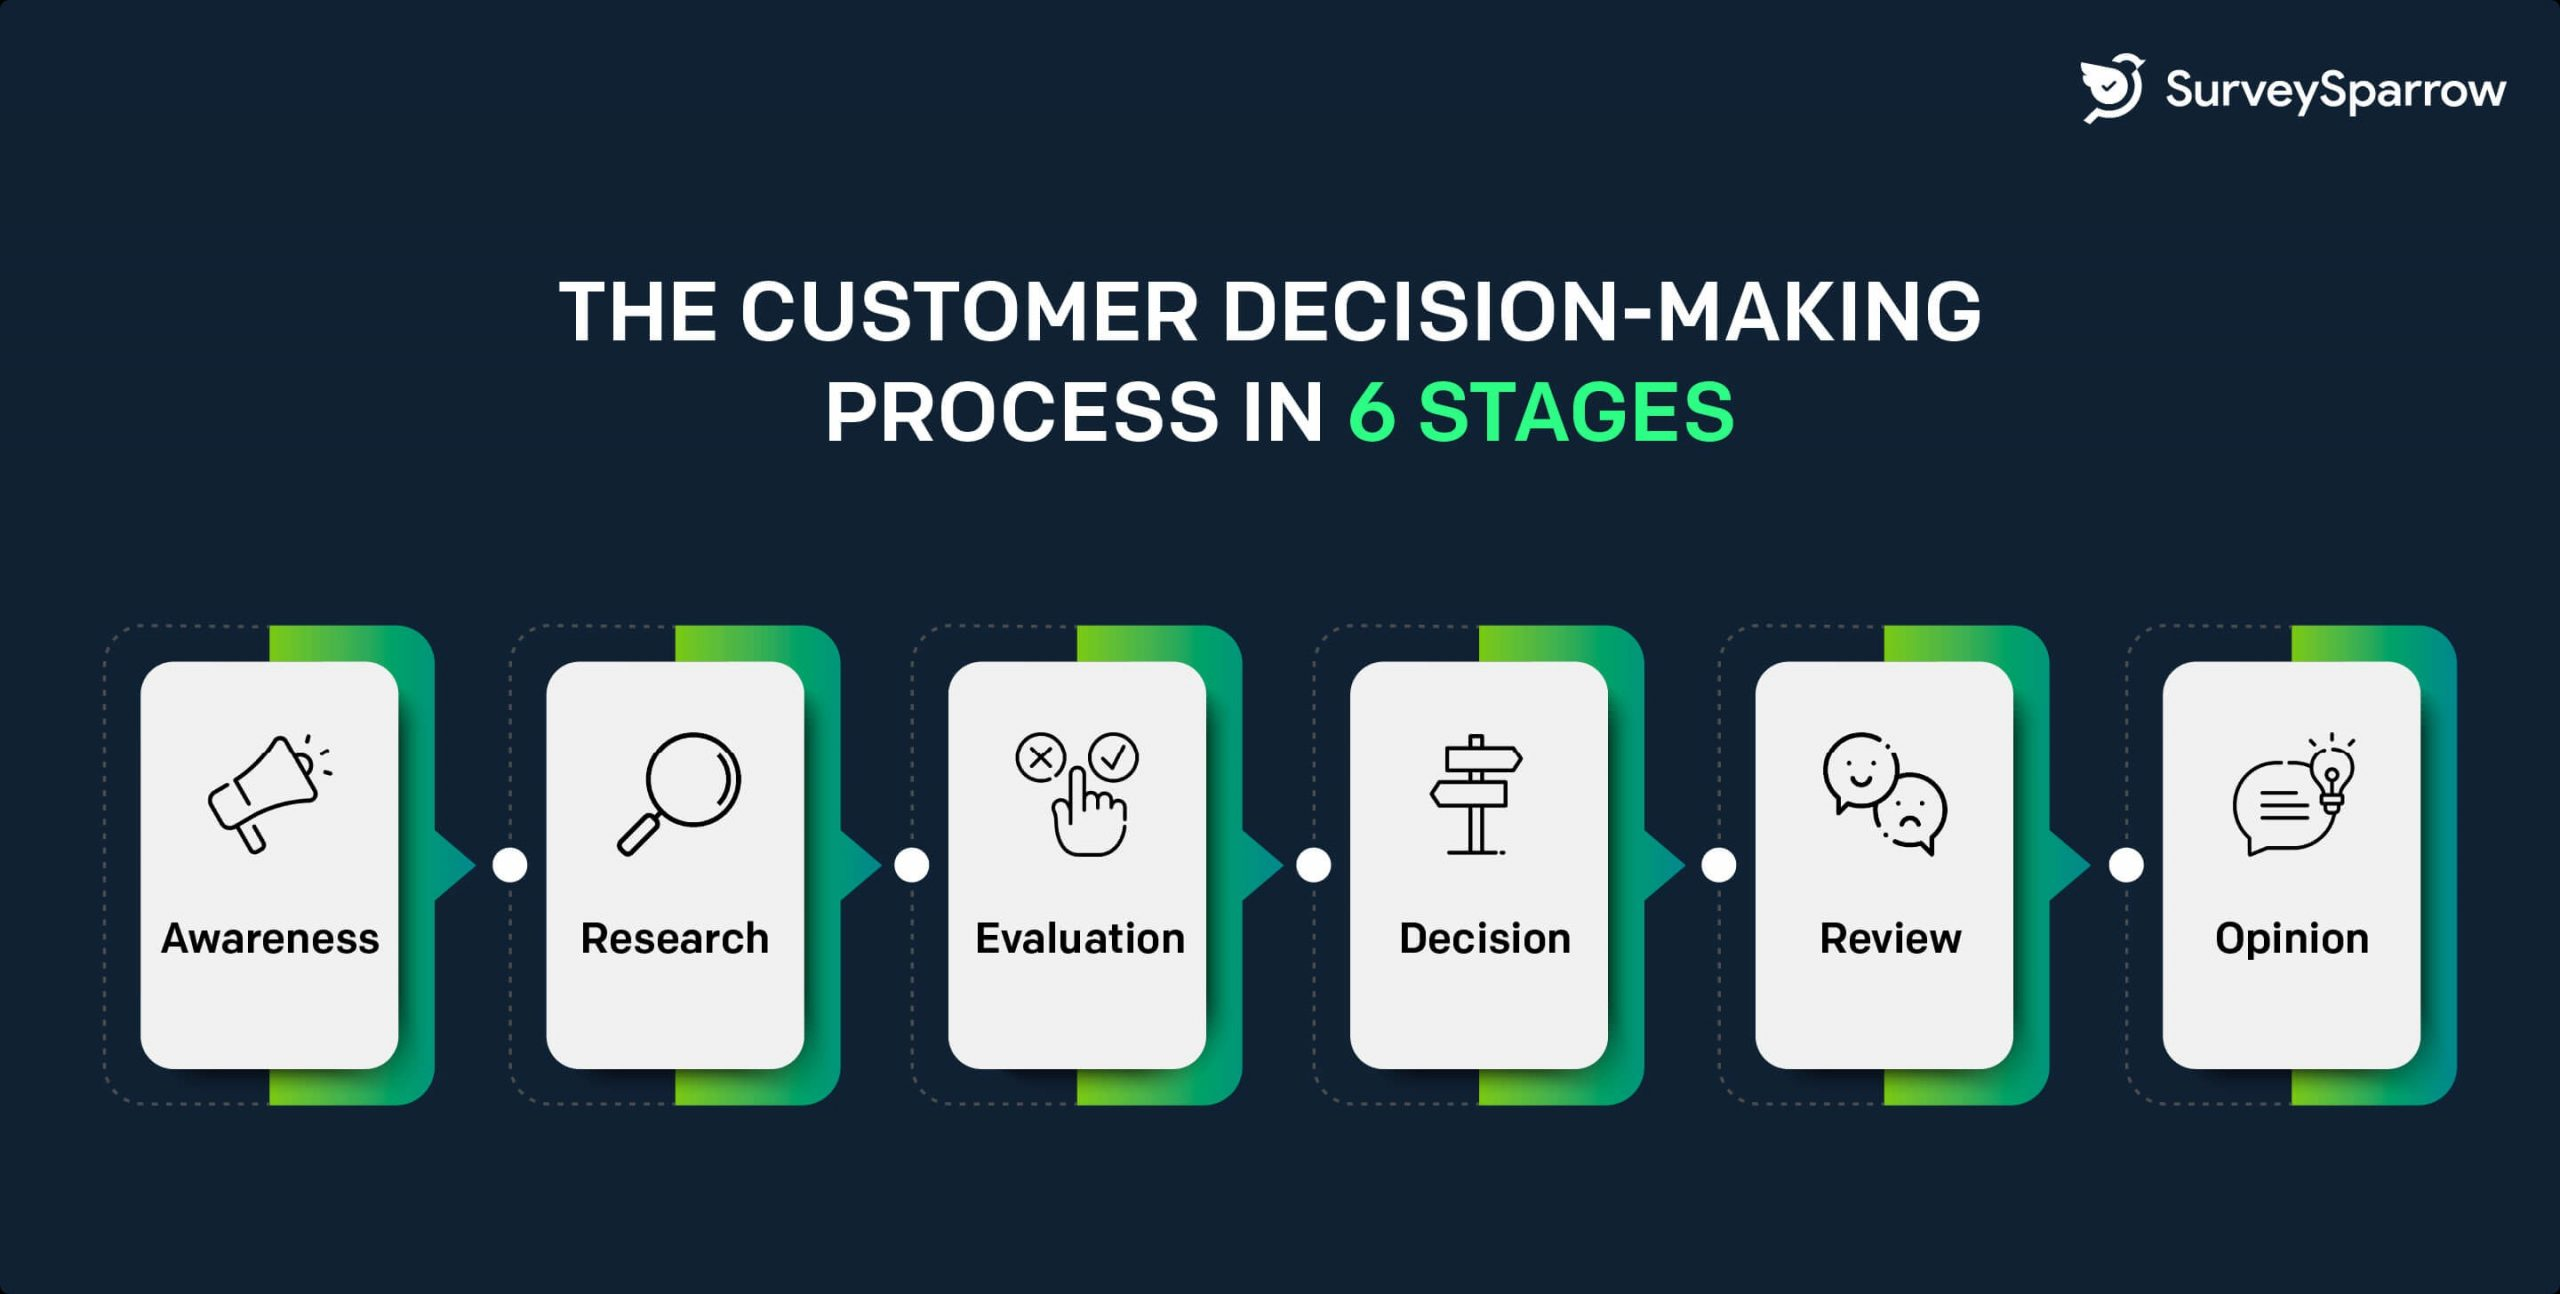 Customer decision making process in 6 stages: awareness, research, evaluation, decision, review, opinion